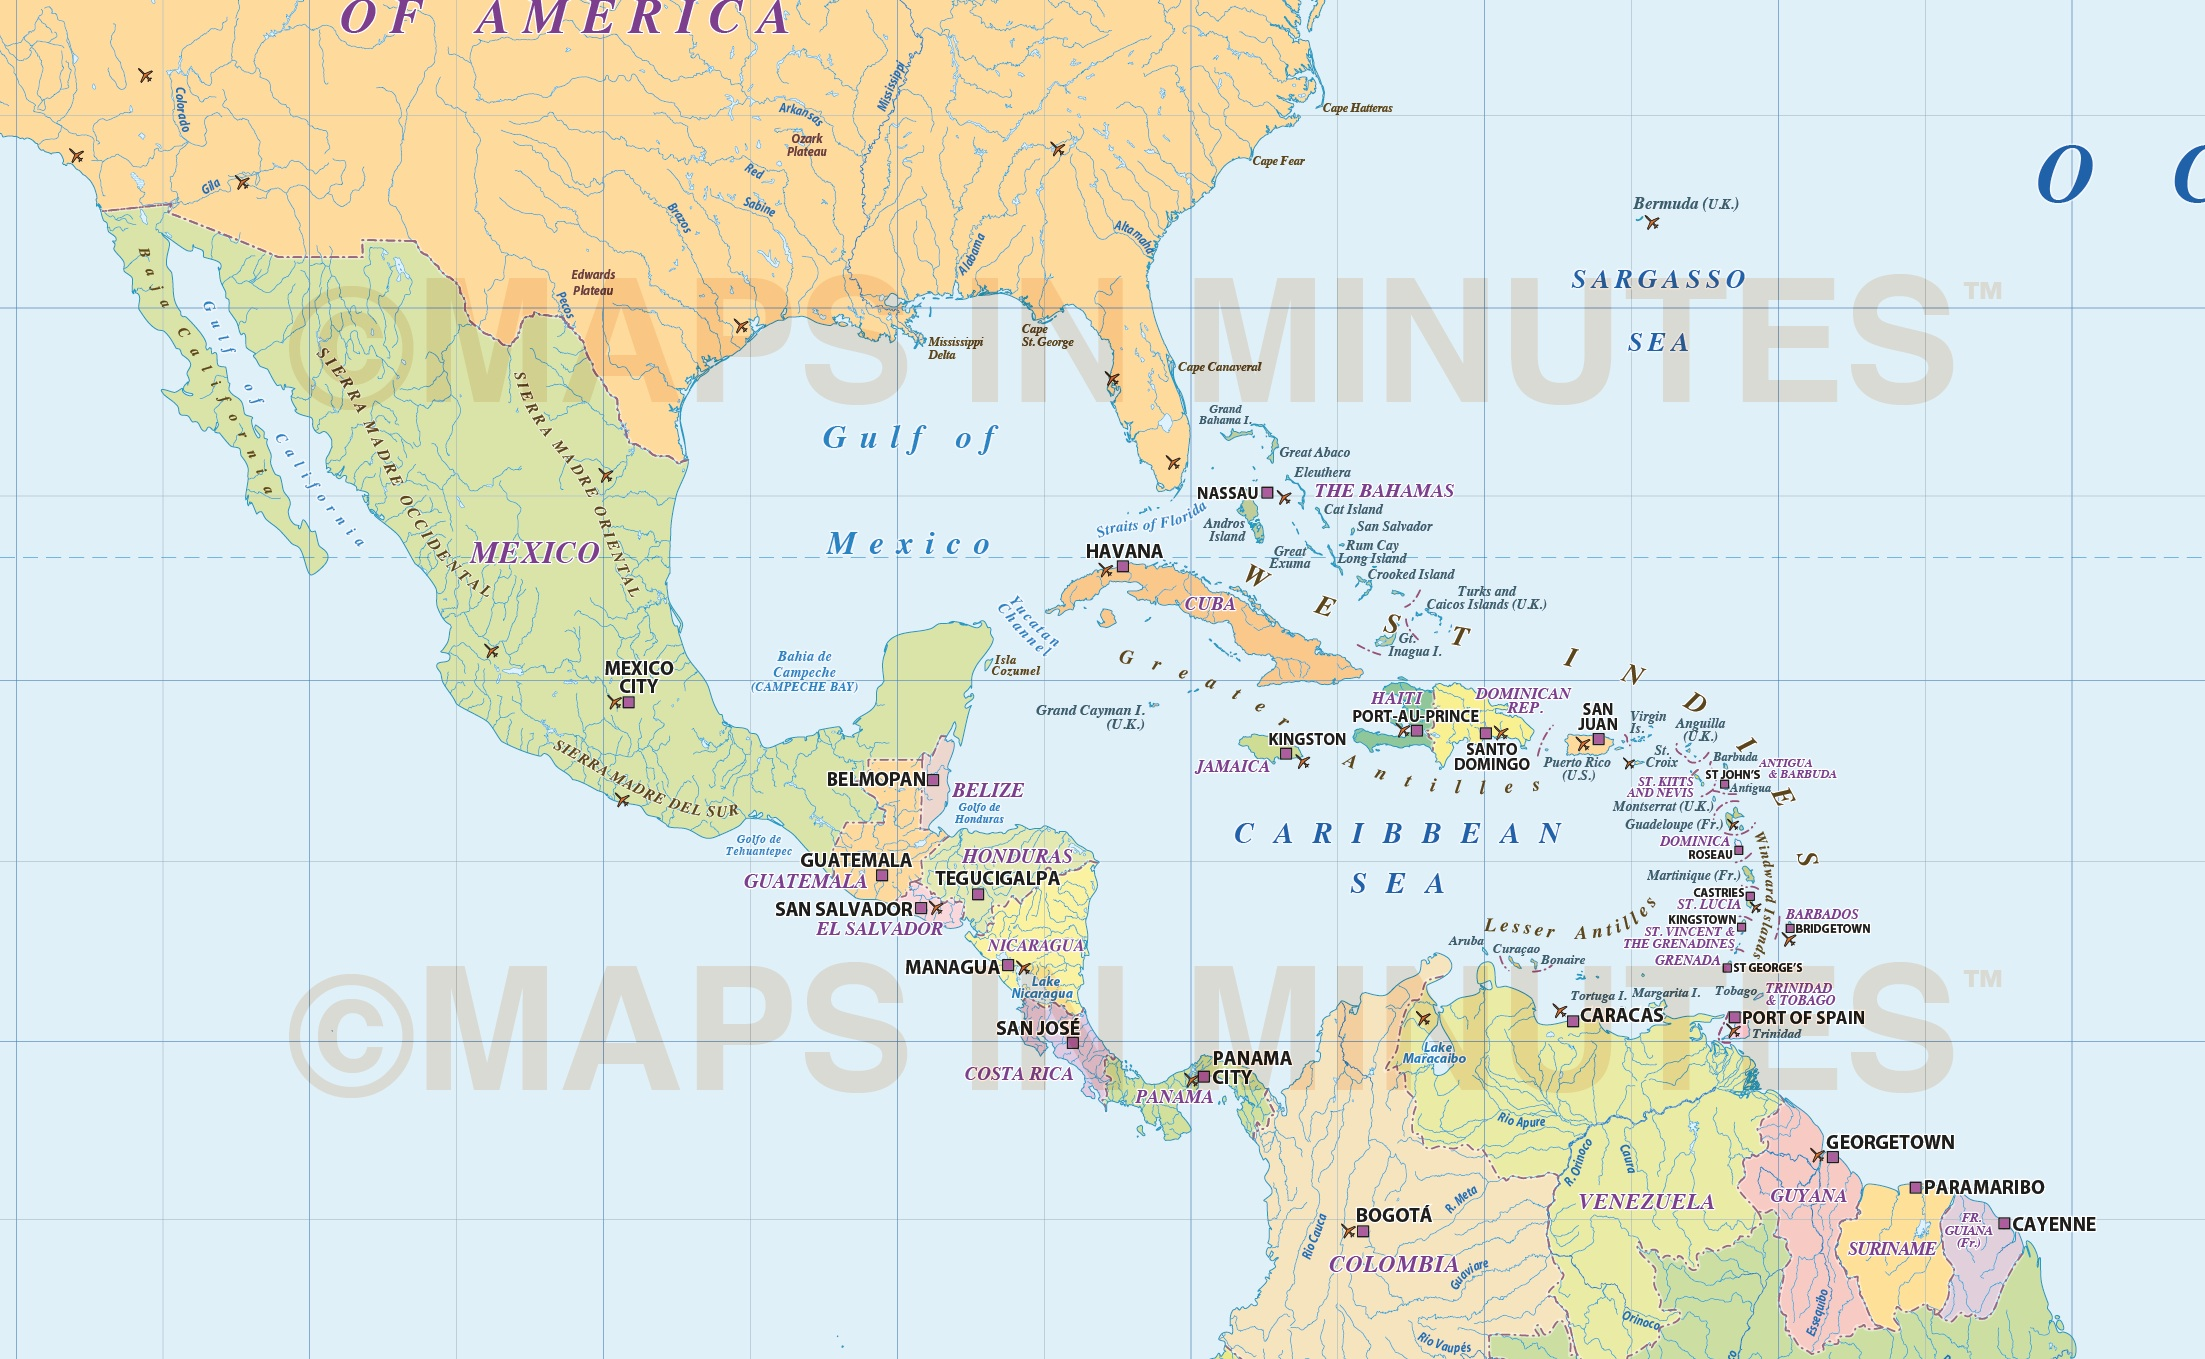 North America Countries Map With Ocean Floor Contours Scale - Political map of barbados